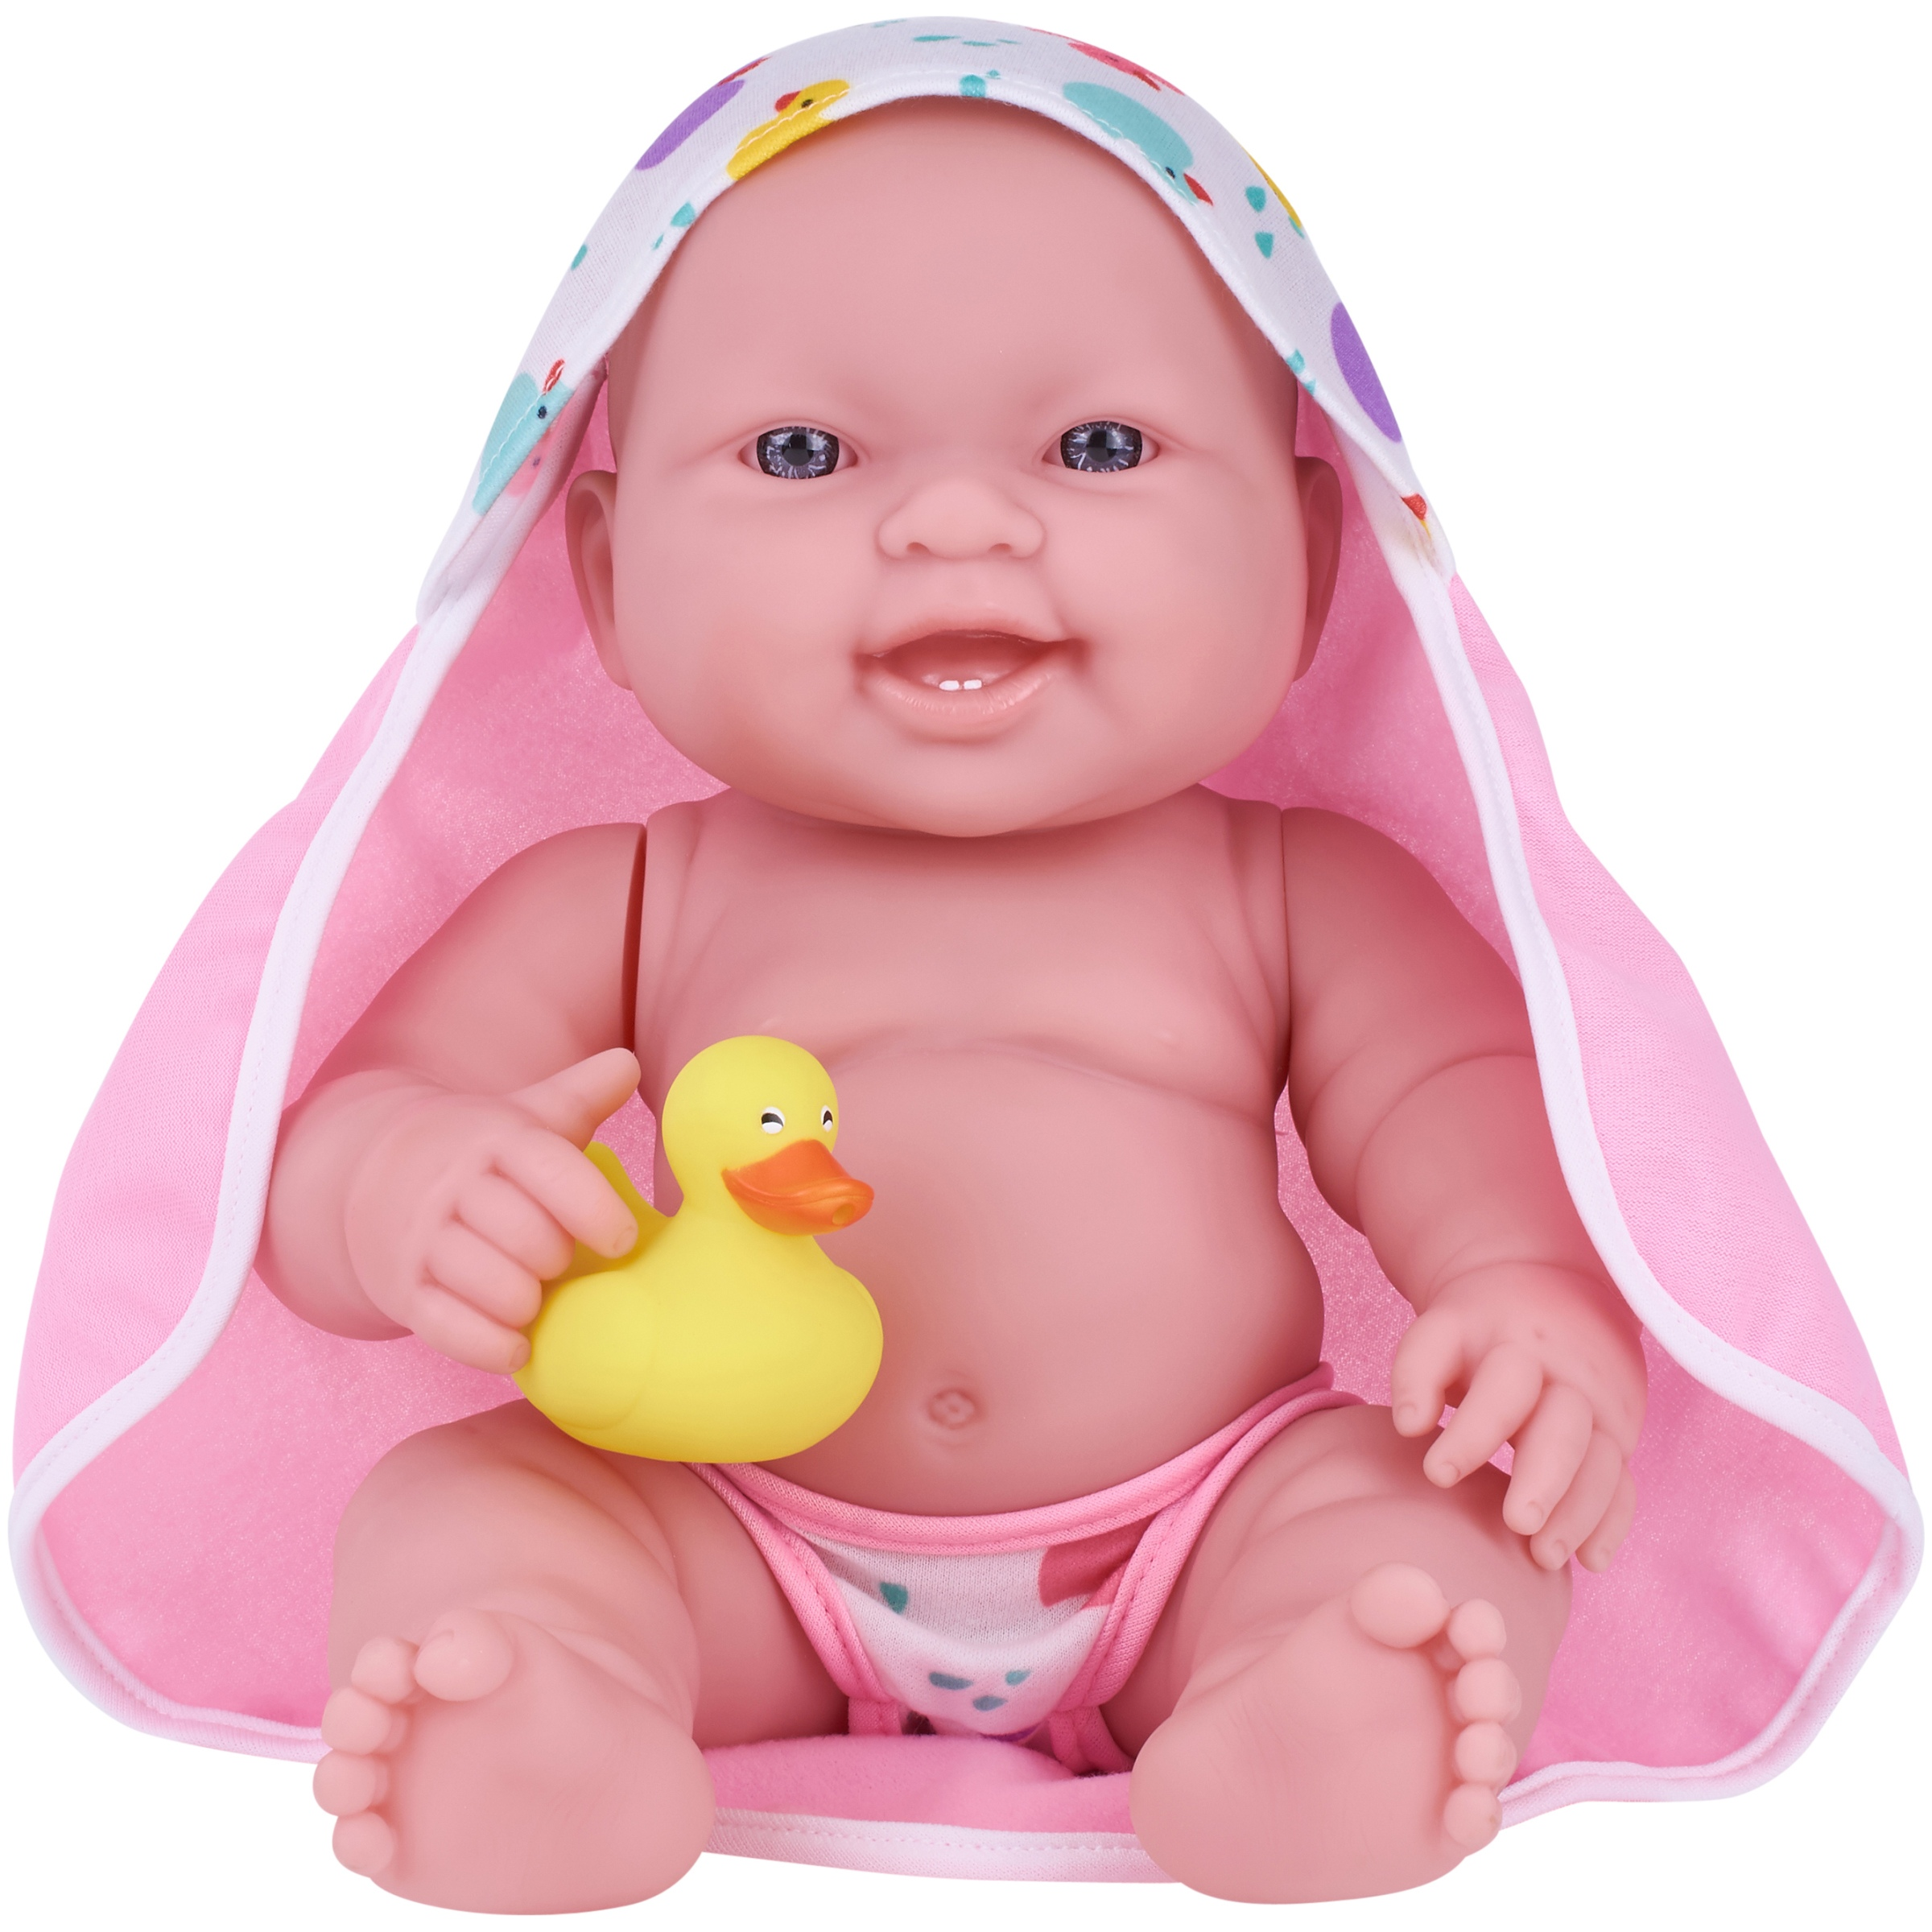 My Sweet Love 14 Baby Doll With Real Working Bathtub And Duck Walmart Com Walmart Com